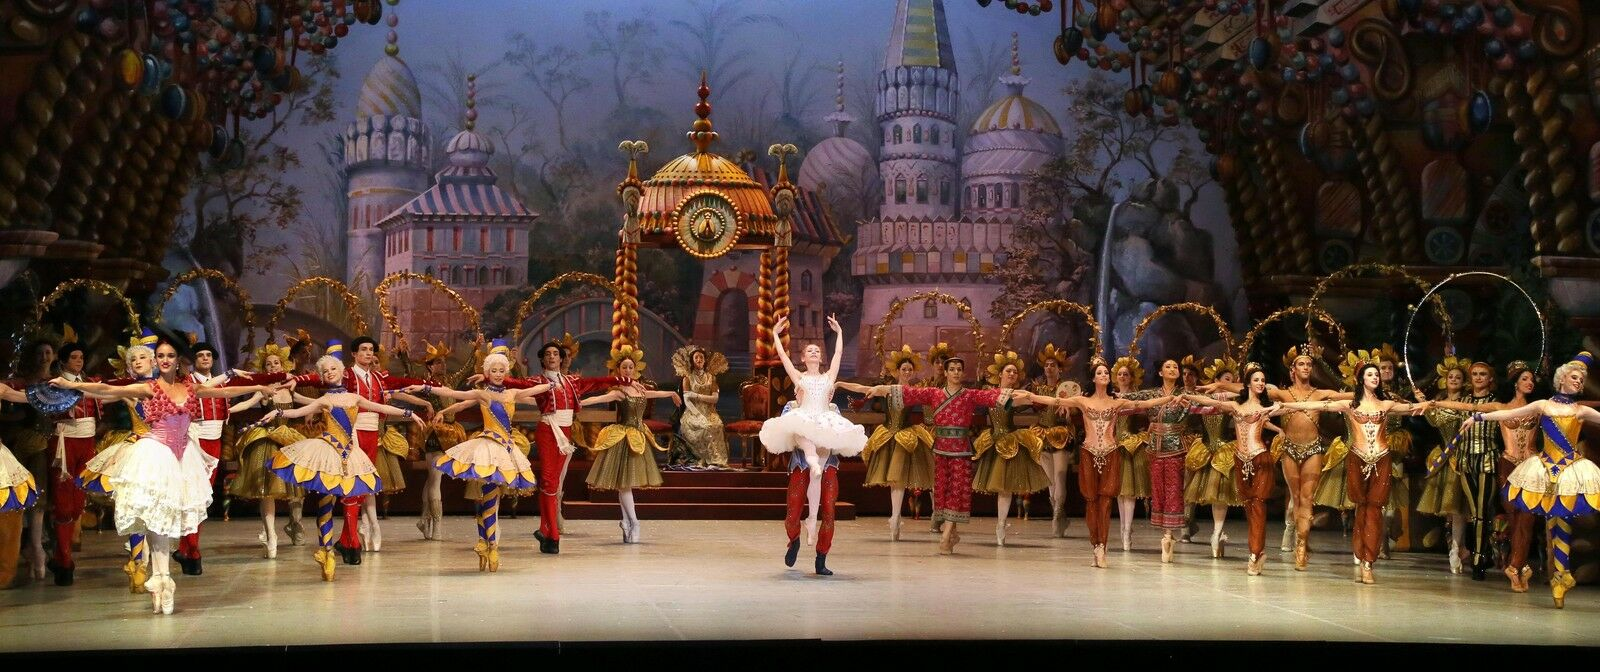 The Nutcracker San Francisco